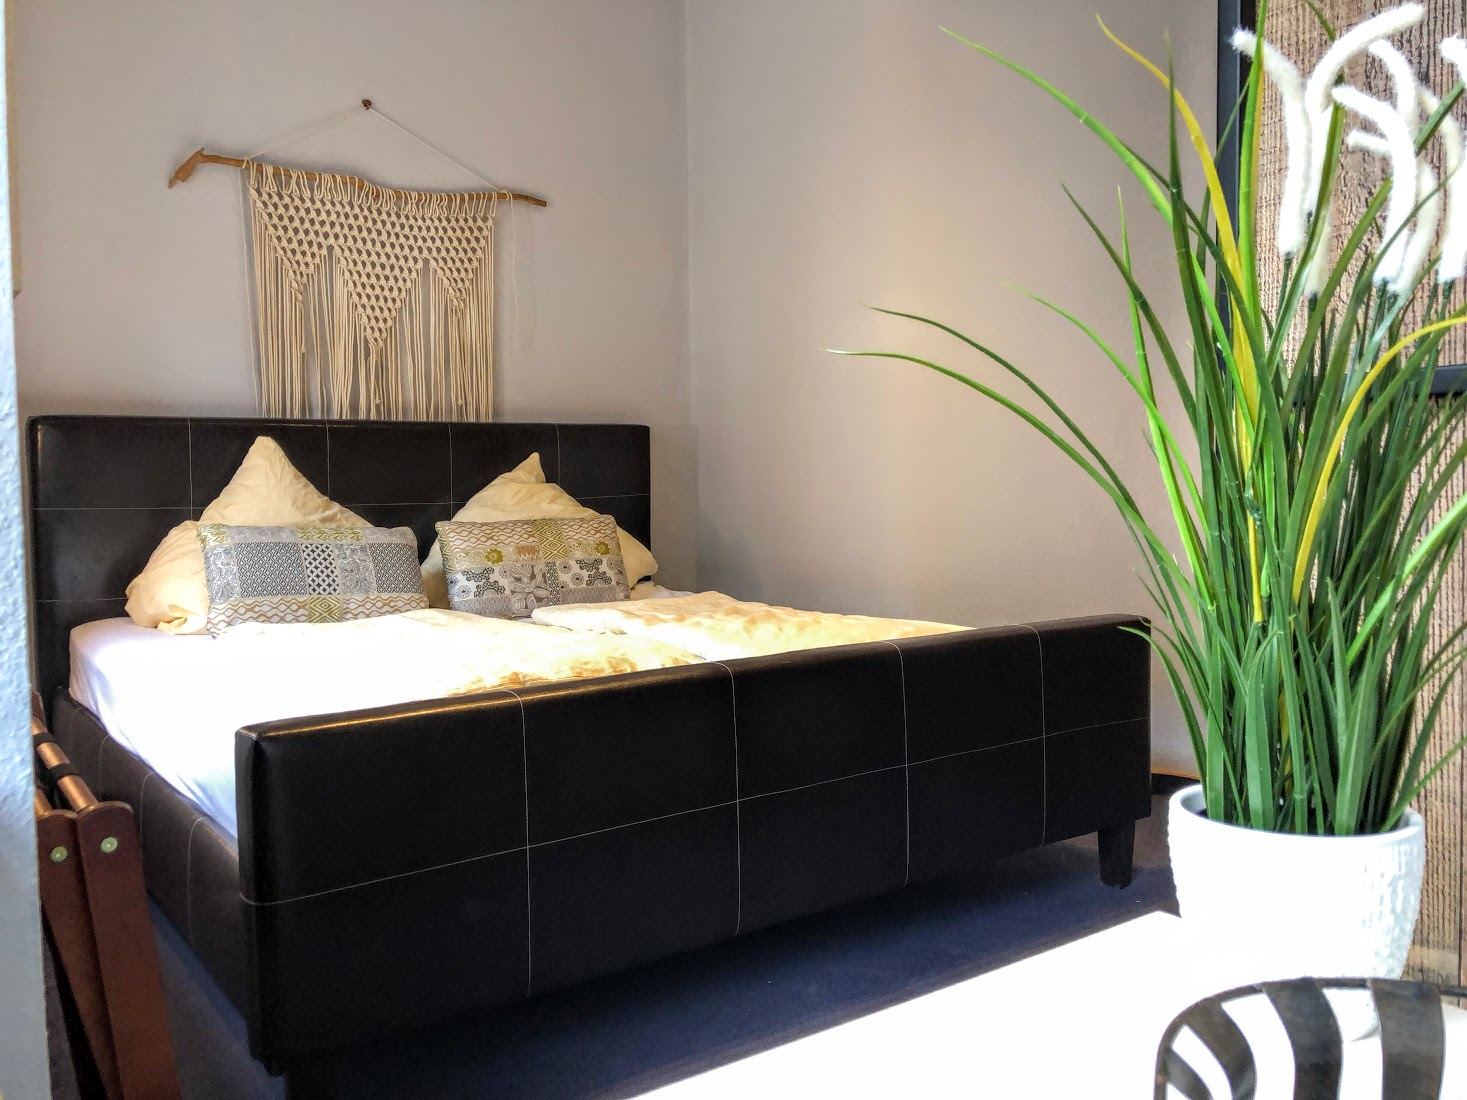 The second bedroom also features a large, comfortable bed